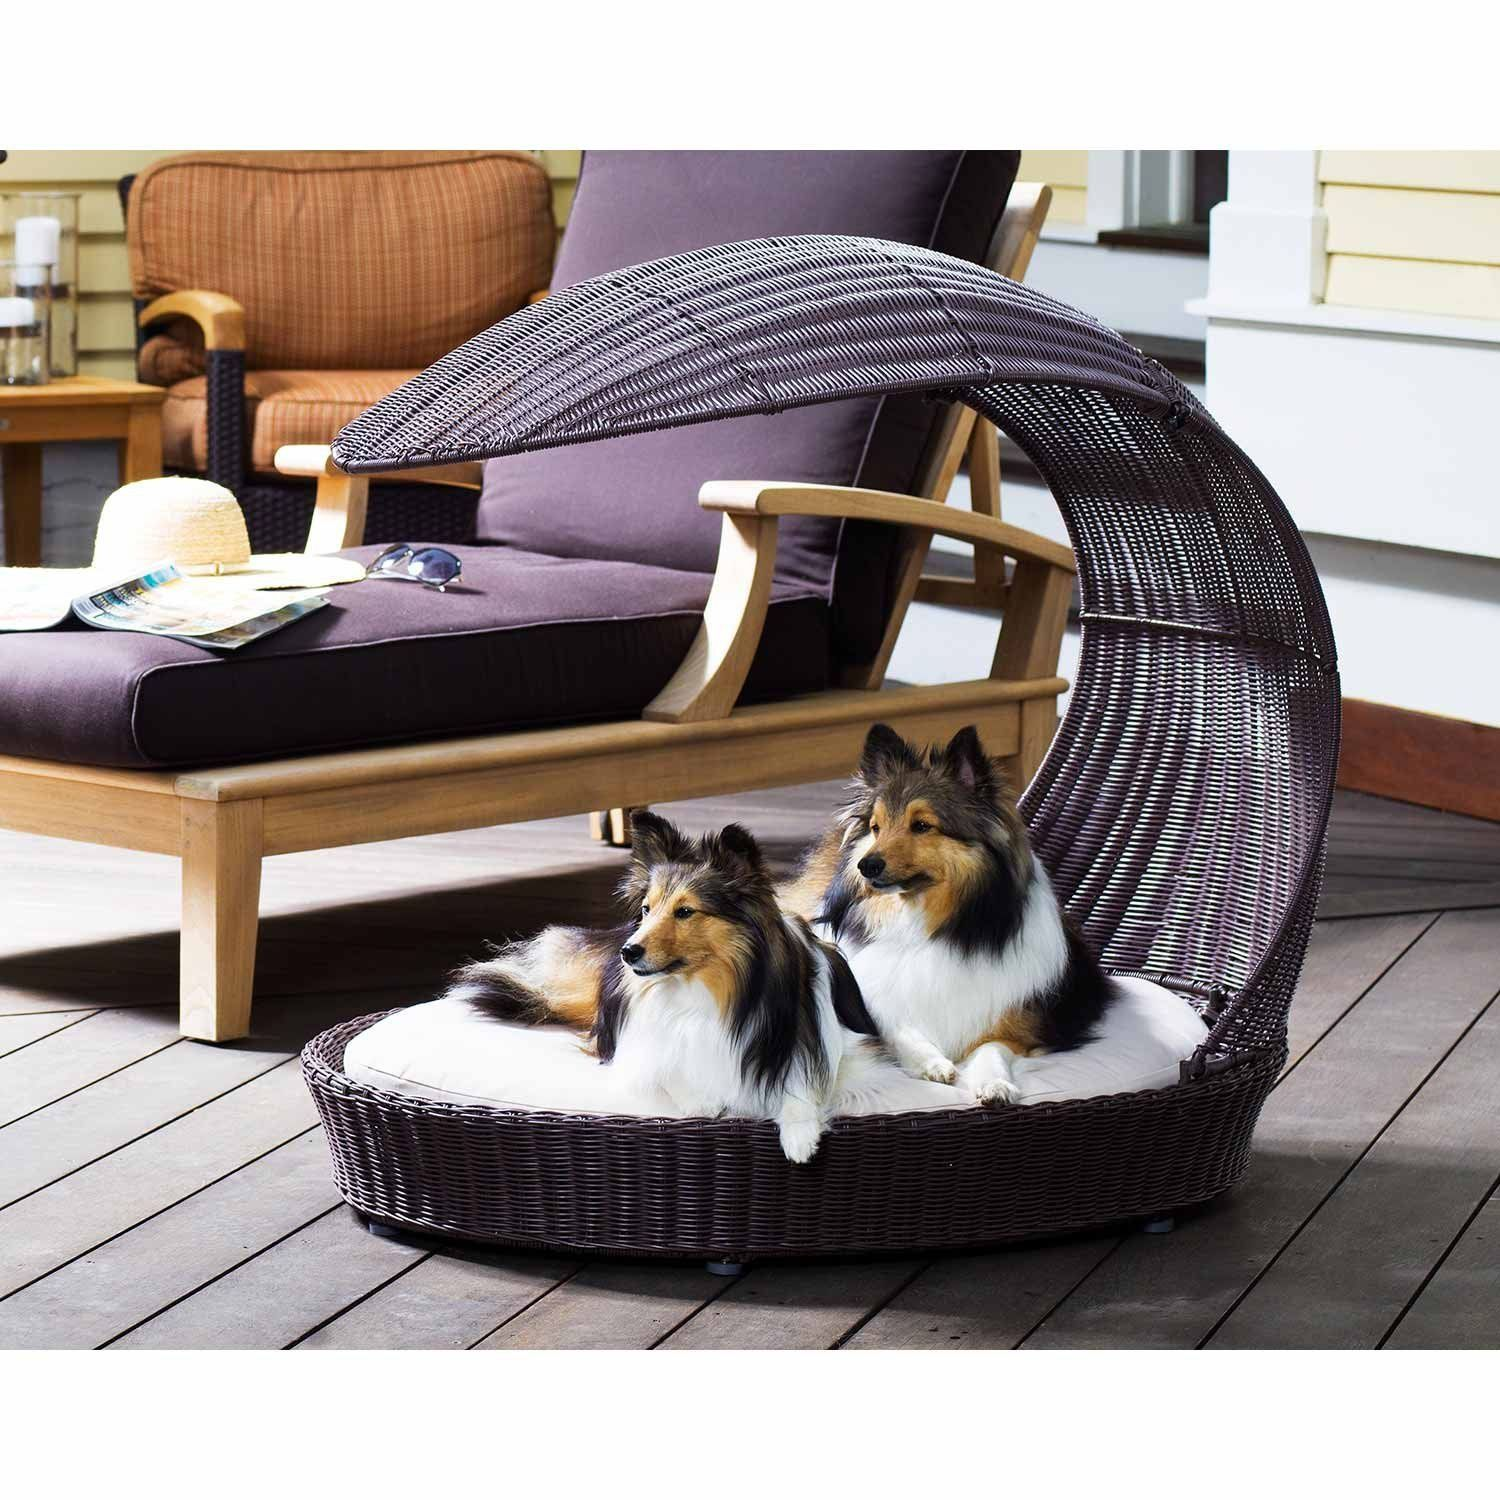 Superieur Outdoor Furniture For Dogs   Best Way To Paint Wood Furniture Check More At  Http://cacophonouscreations.com/outdoor Furniture For Dogs/